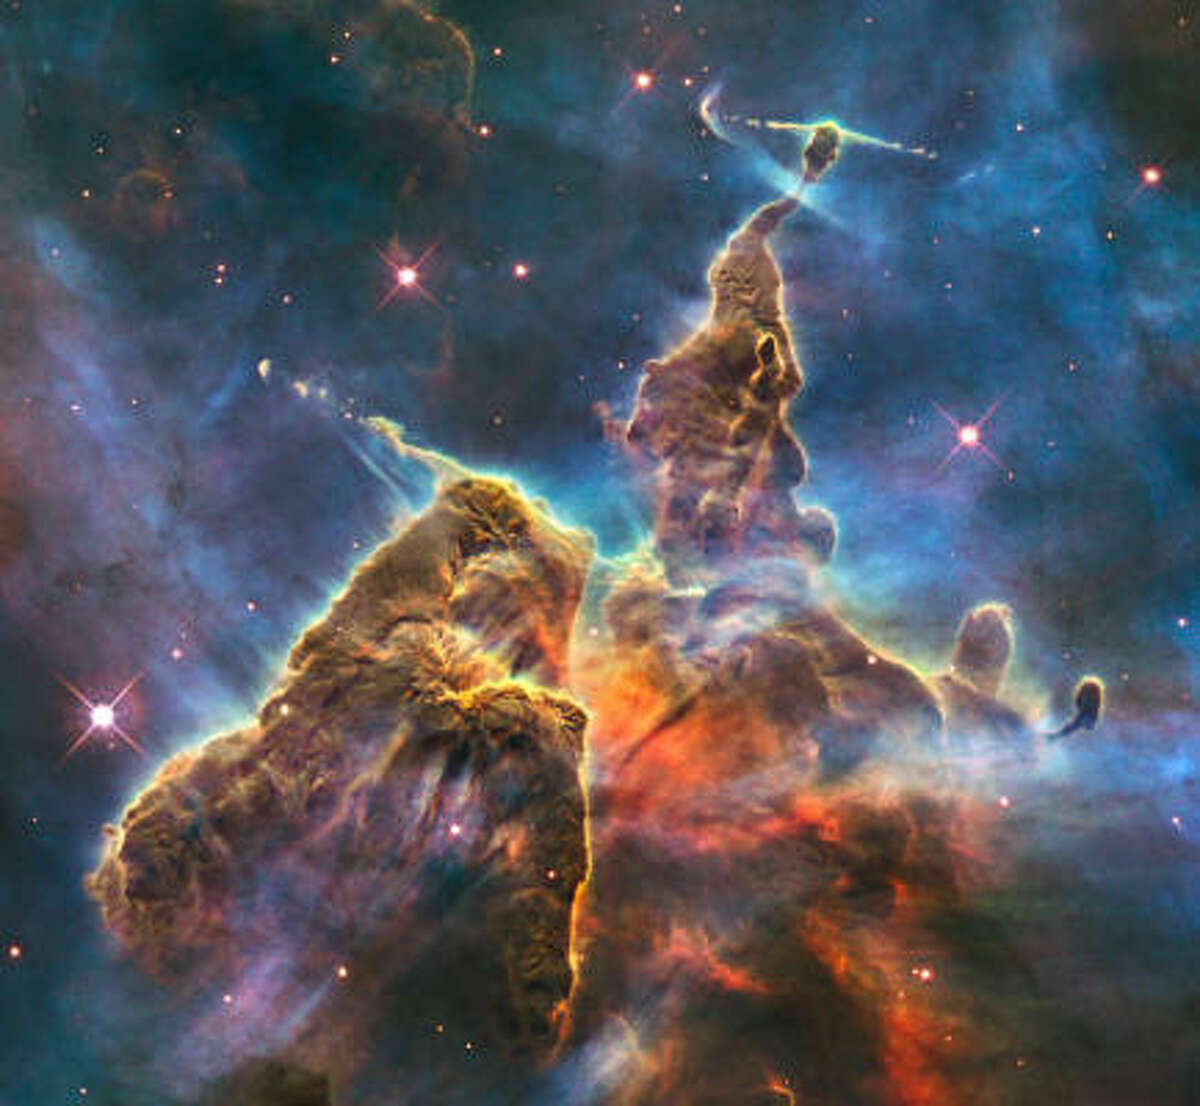 This composite image from the Hubble telescope, taken between Feb. 1 and 2, shows an image of a pillar of star birth, three light-years high. The image celebrates the 20th anniversary of Hubble's launch.